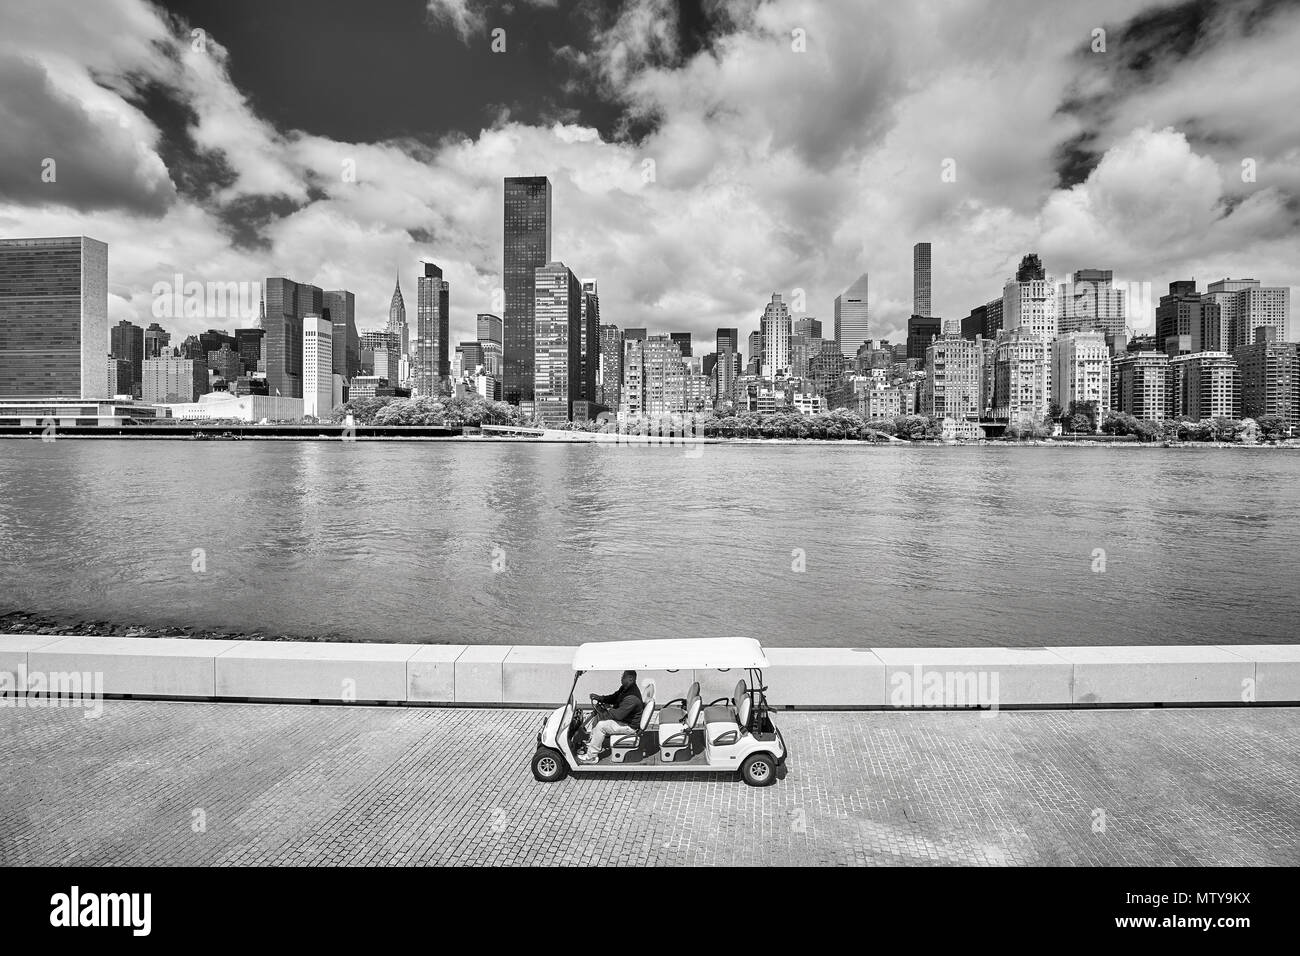 New York City, USA - May 26, 2017: Passenger golf cart on the Franklin D. Roosevelt Four Freedoms Park promenade, New York City skyline in background. - Stock Image